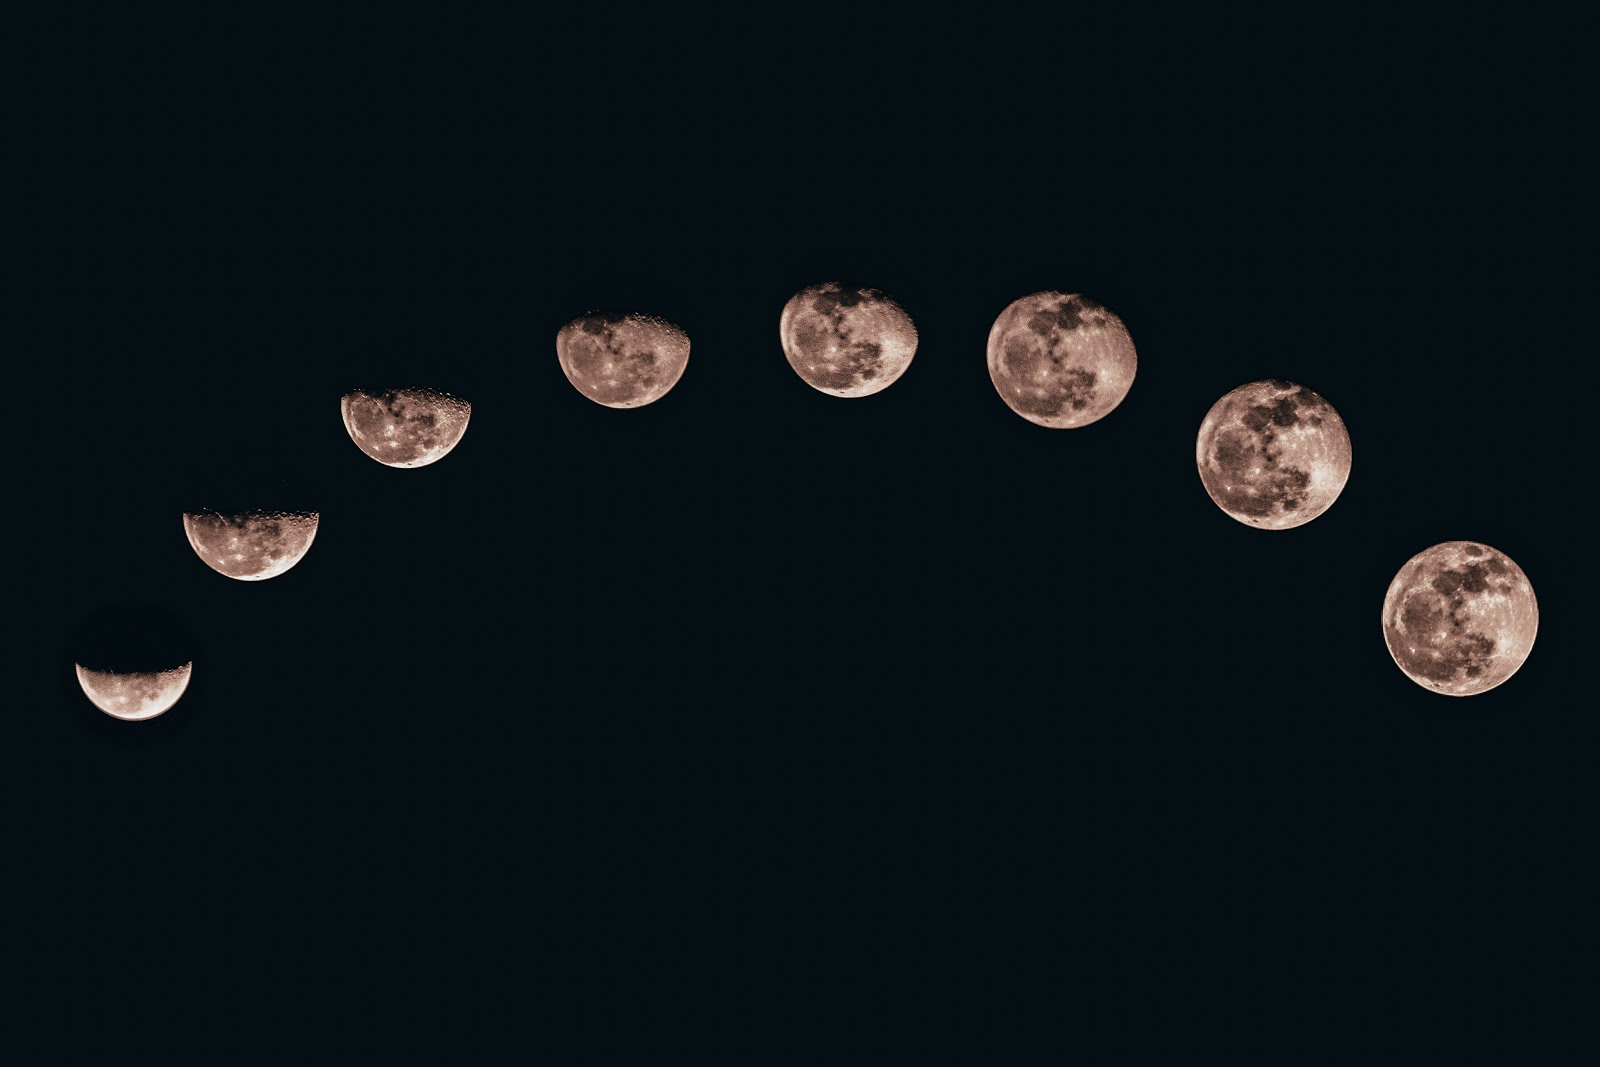 Why am I so attracted to the Moon? (Selenophilia)